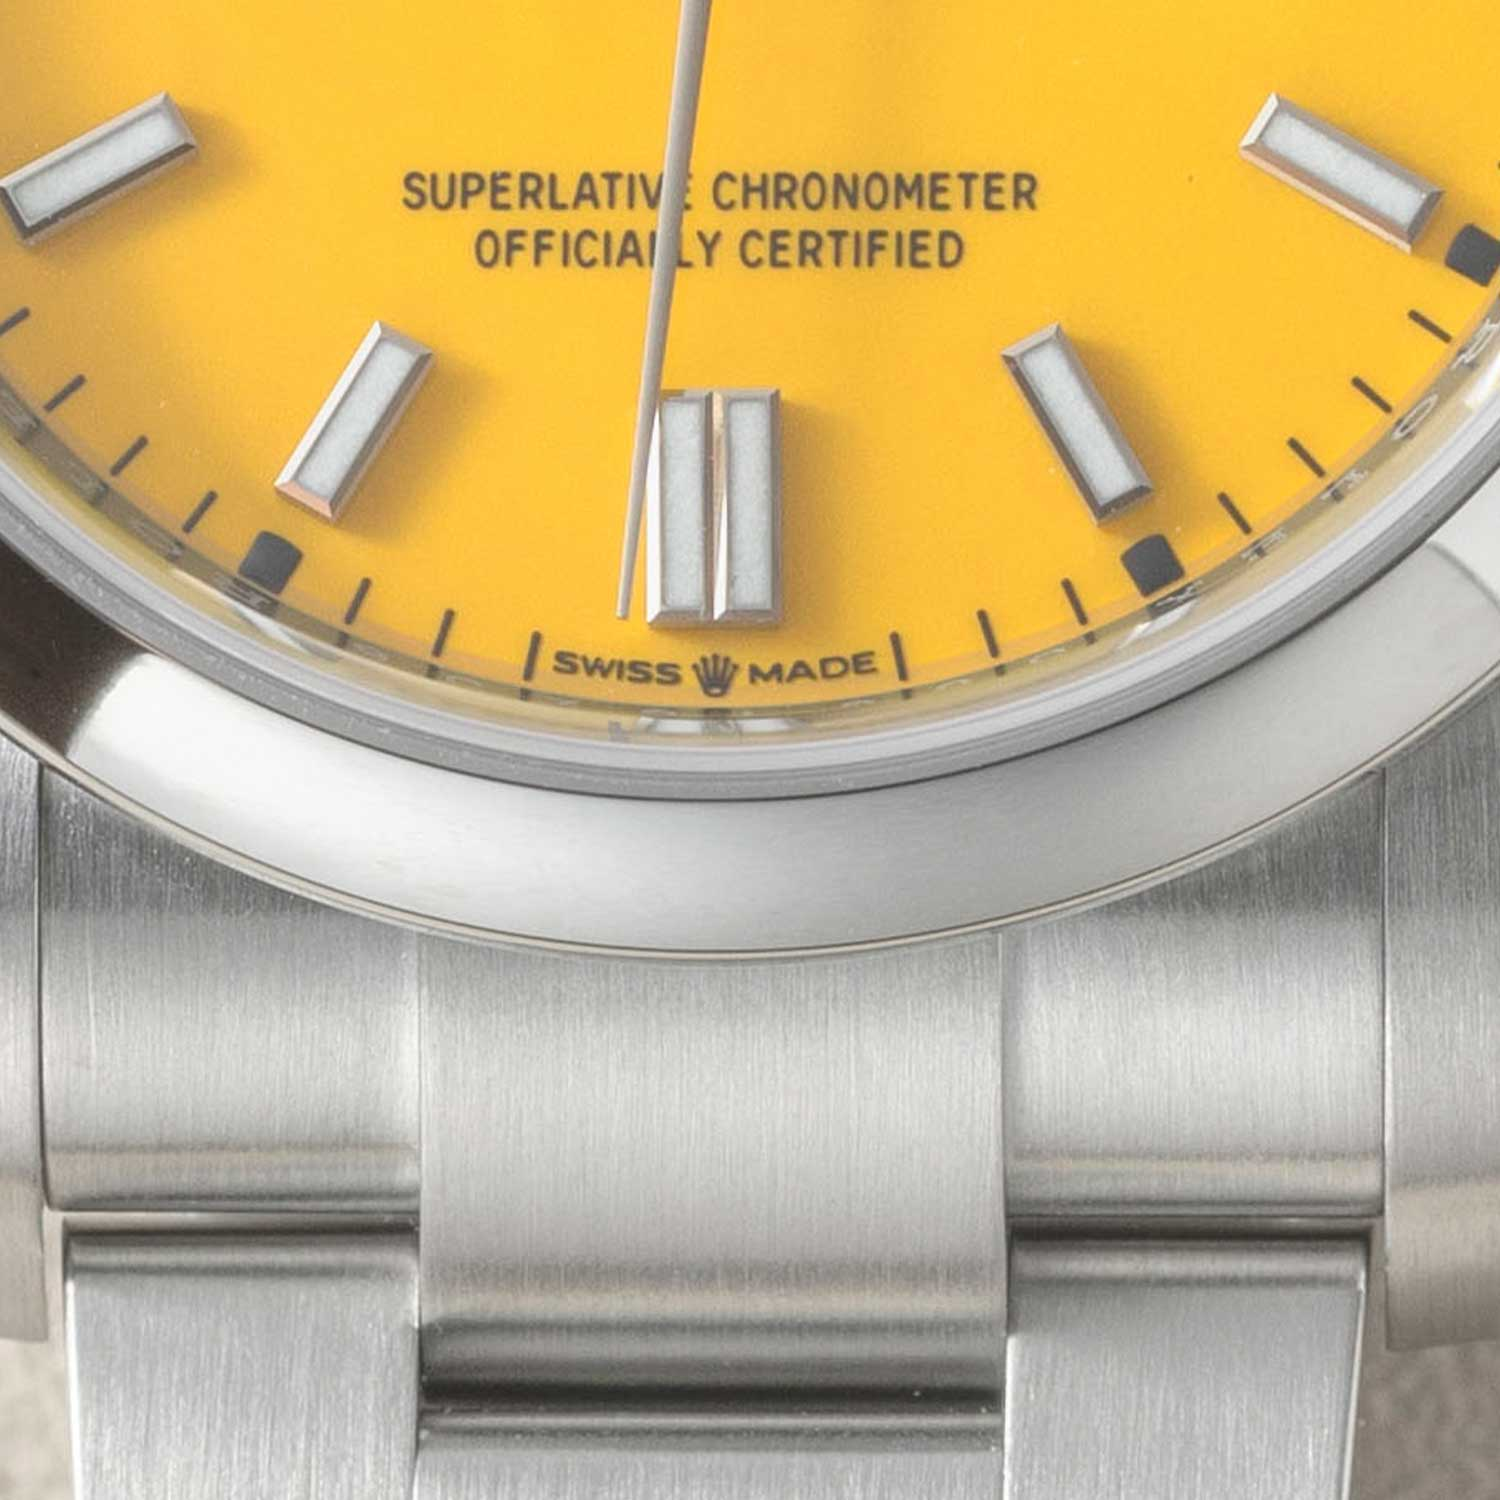 """The all familiar coronet placed between """"Swiss Made"""" on the 36mm 2020 Rolex Oyster Perpetual, marking that the watch contains the newer 3230 Superlative Chronometer movement rated to -2/+2 deviation (©Revolution)"""